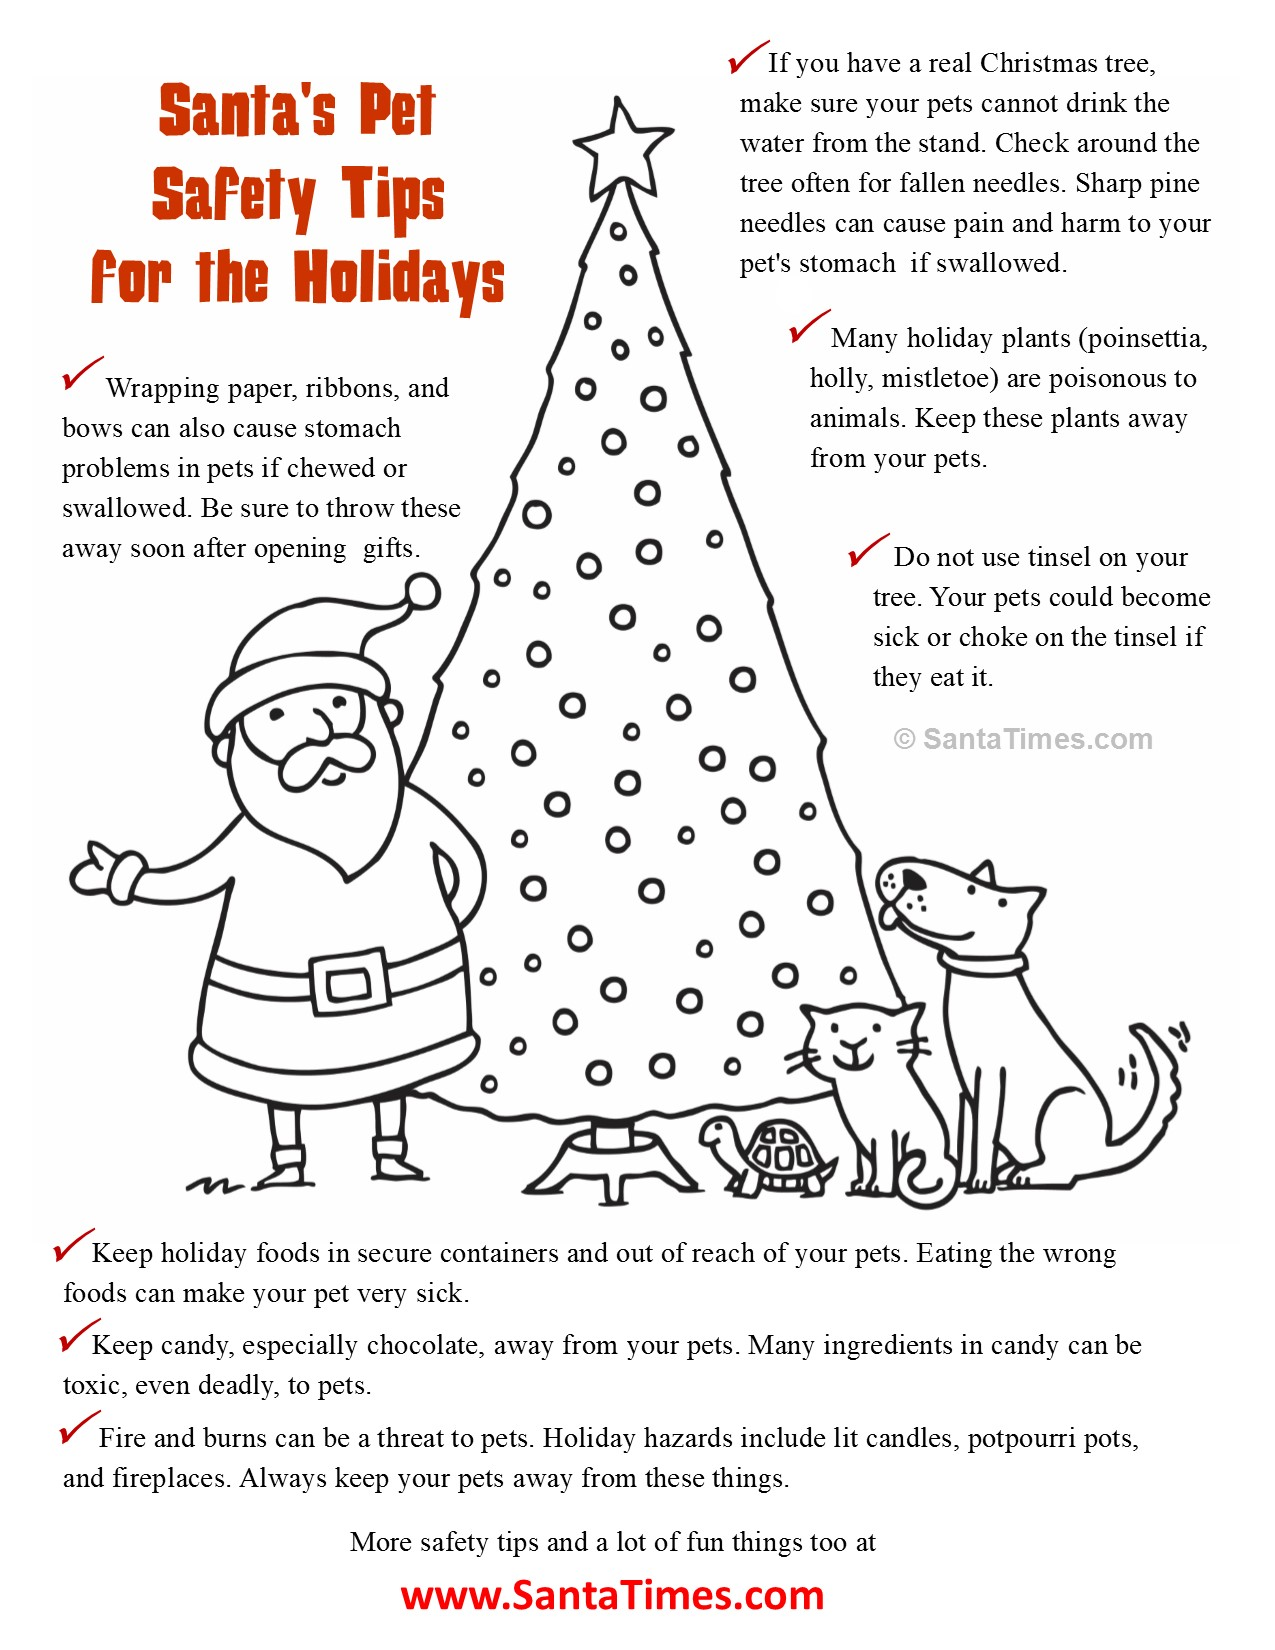 Christmas Dog Printable Coloring Pages With Santa S Pet Safety Page Here Are Some Helpful